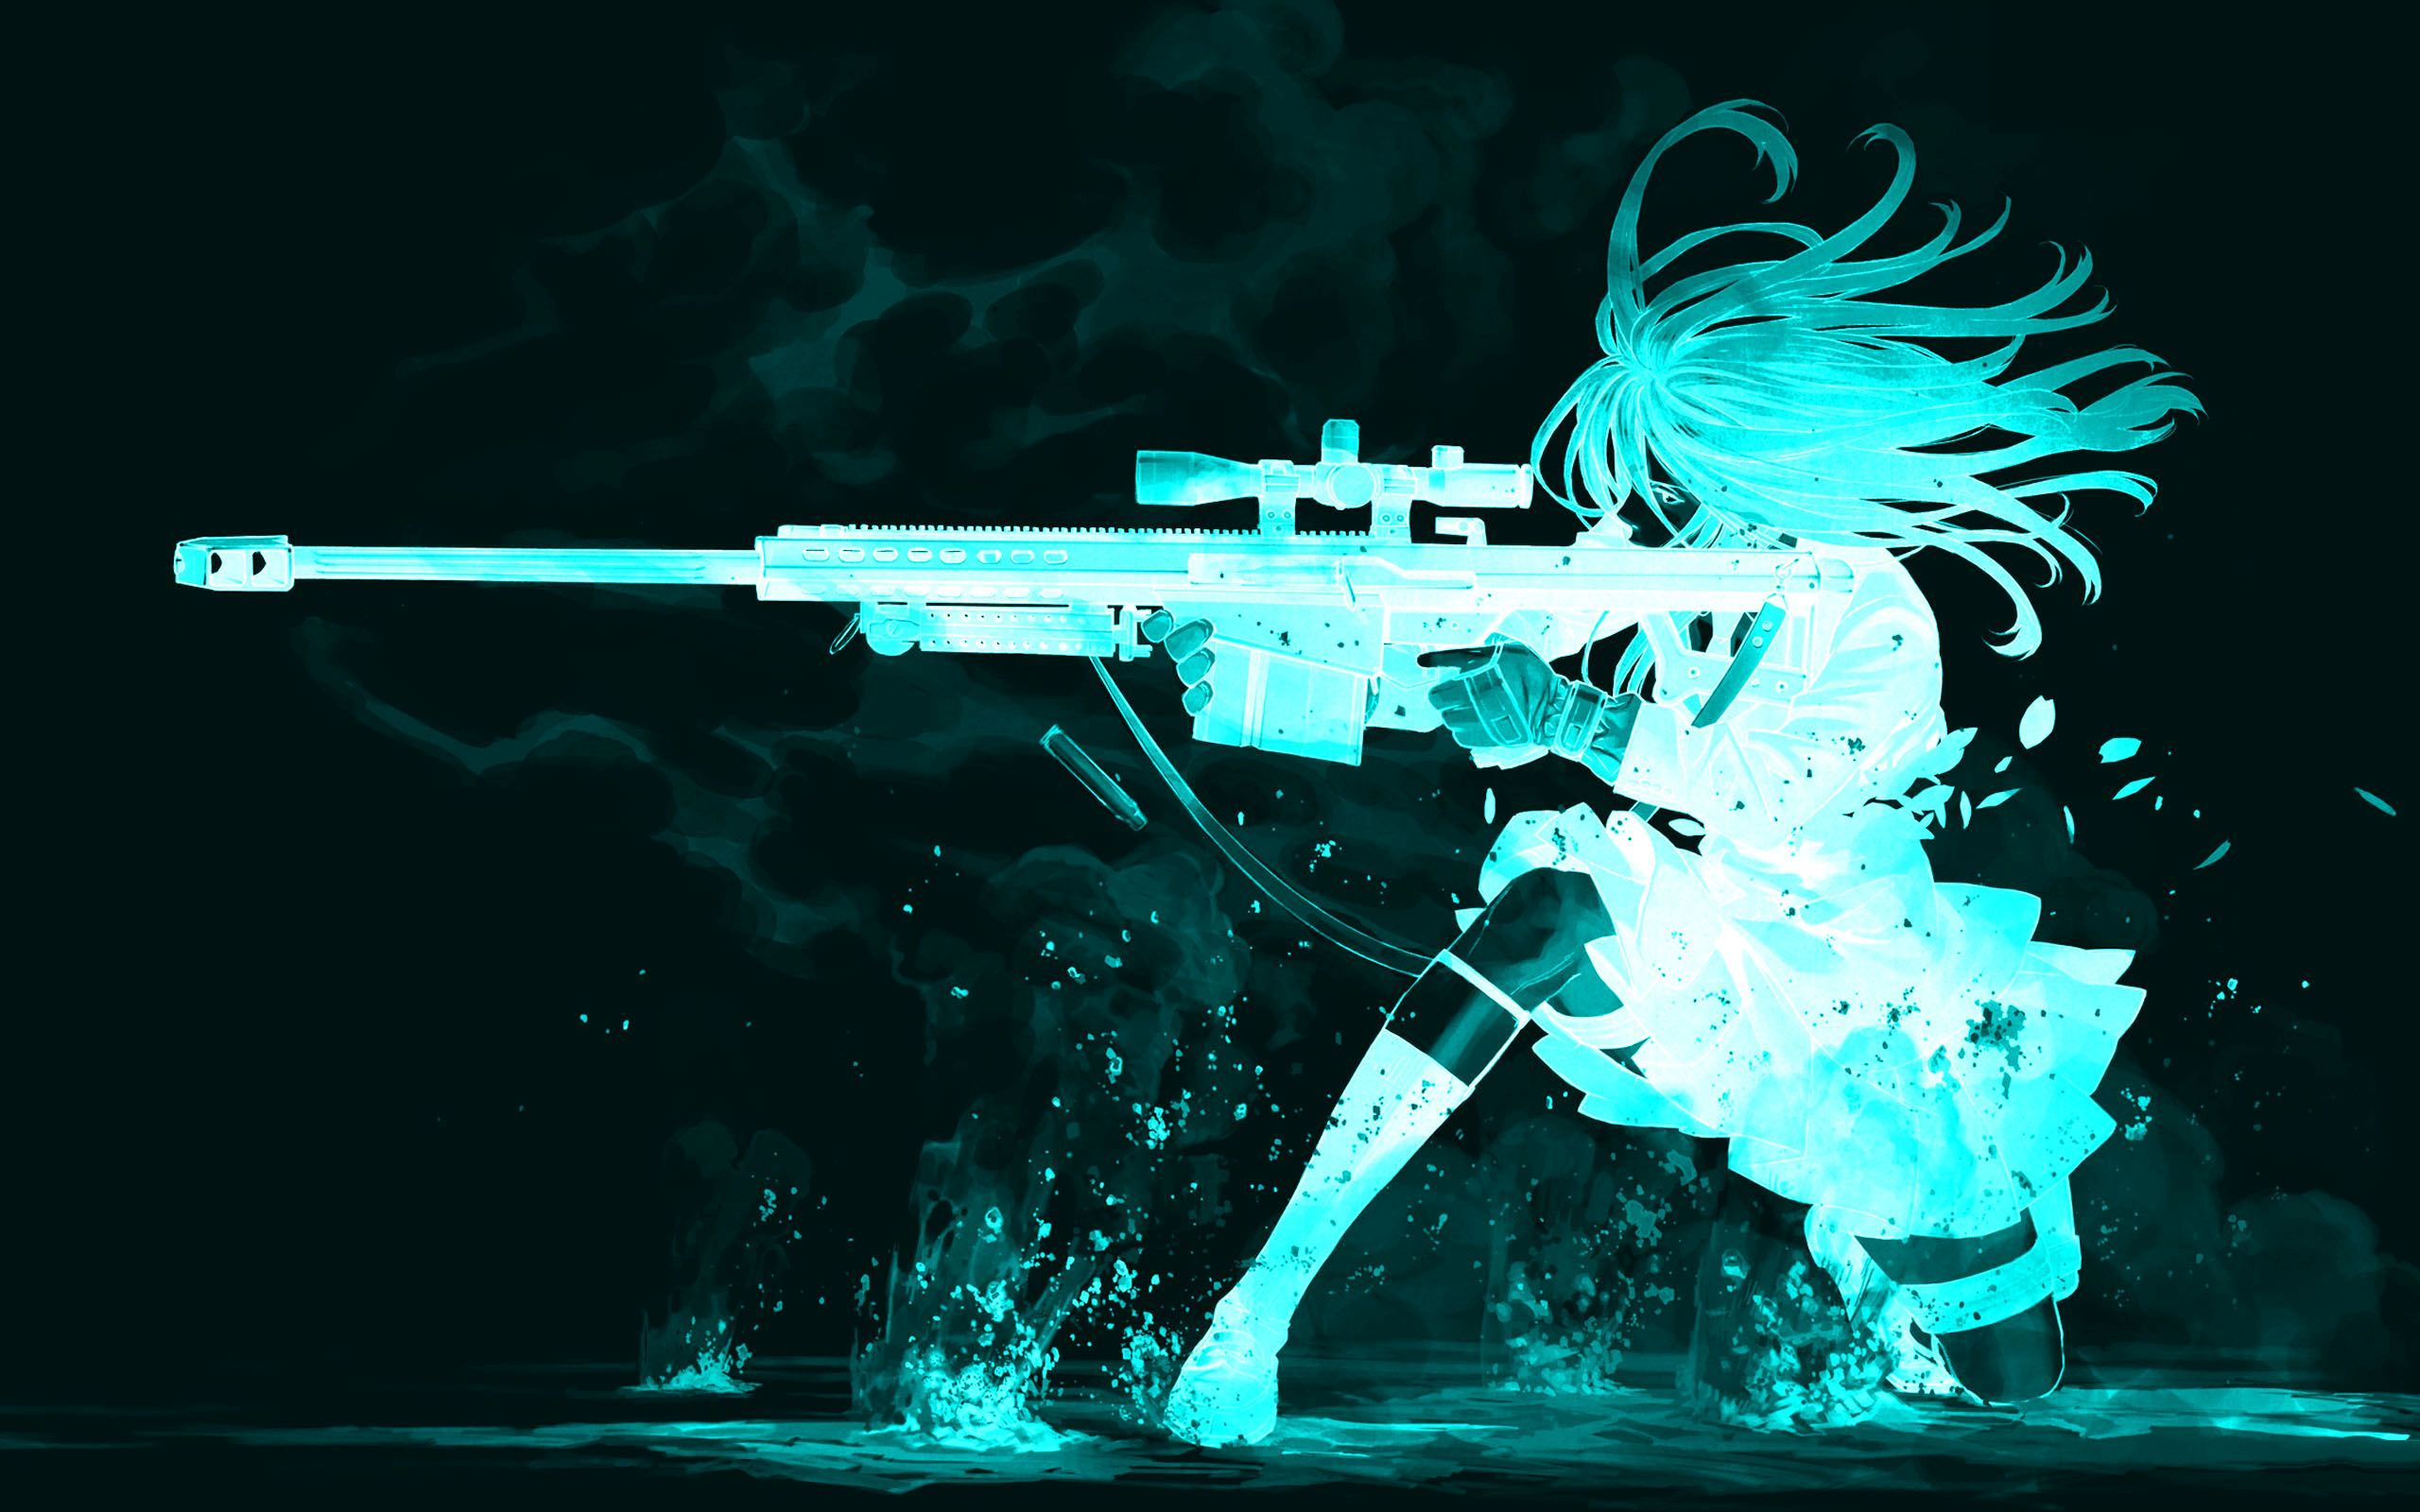 Glowing shooting girl wallpaper 28070 2560x1600